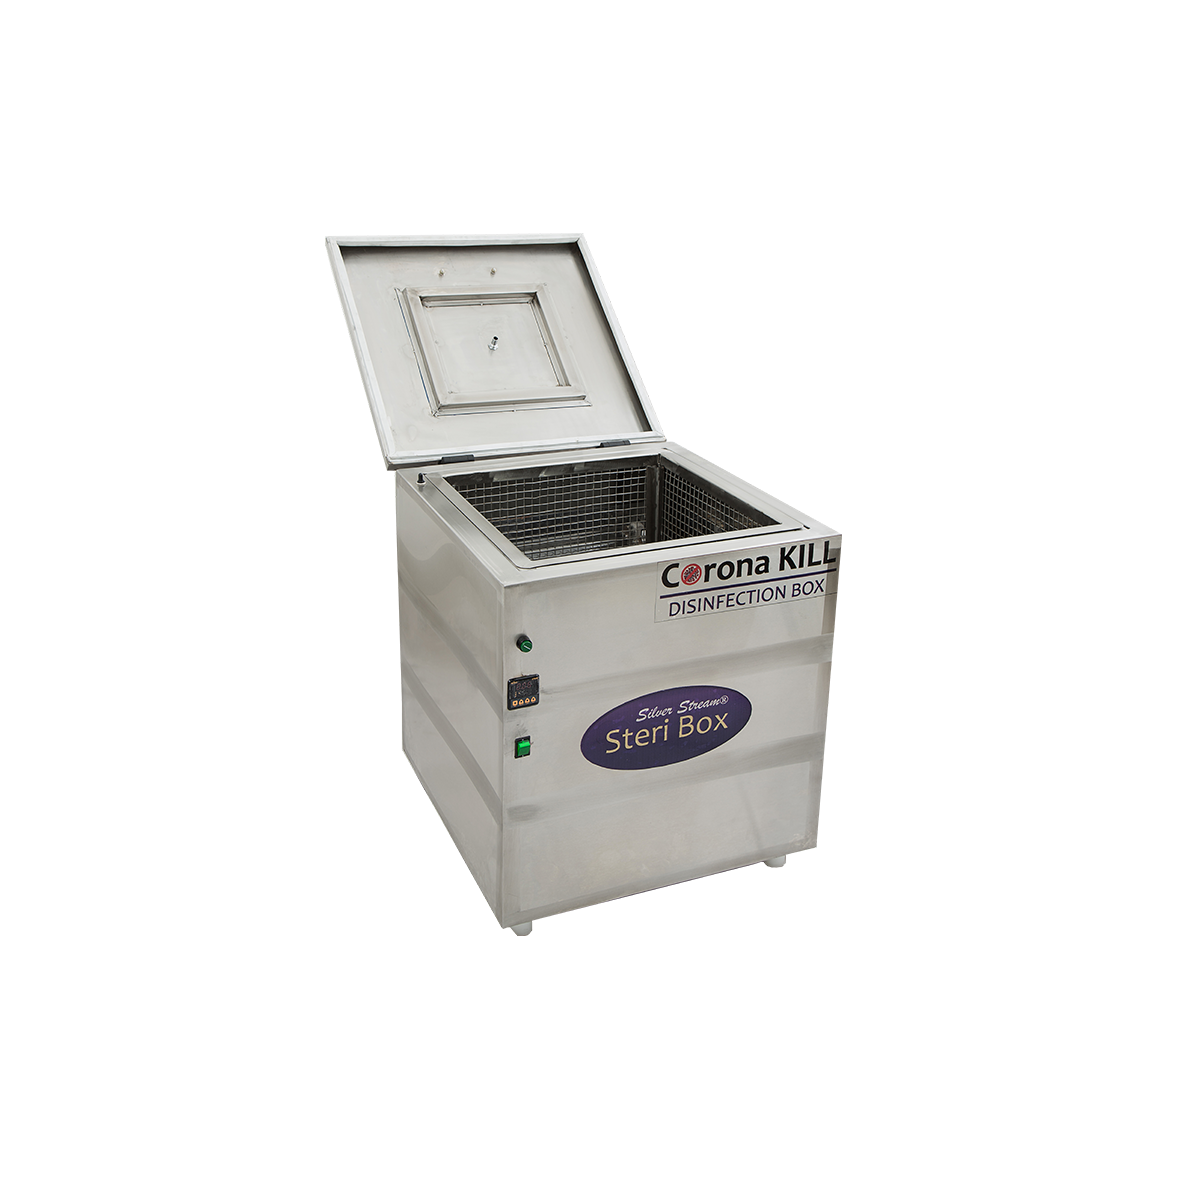 The Silver Stream® Steri Box has been carefully conceived to provide direct germicidal ultraviolet exposure for surface of various personal items like Mask, Gloves, Medical Instruments, Mobile Phone, Car Keys, Purse, News Paper, Pen, Watches, Gold Chain, Belt, etc.   The dosage, as it applies to ultraviolet disinfection, is a function of time, and the intensity, of ultraviolet radiation, to which the surfaces of product exposed.